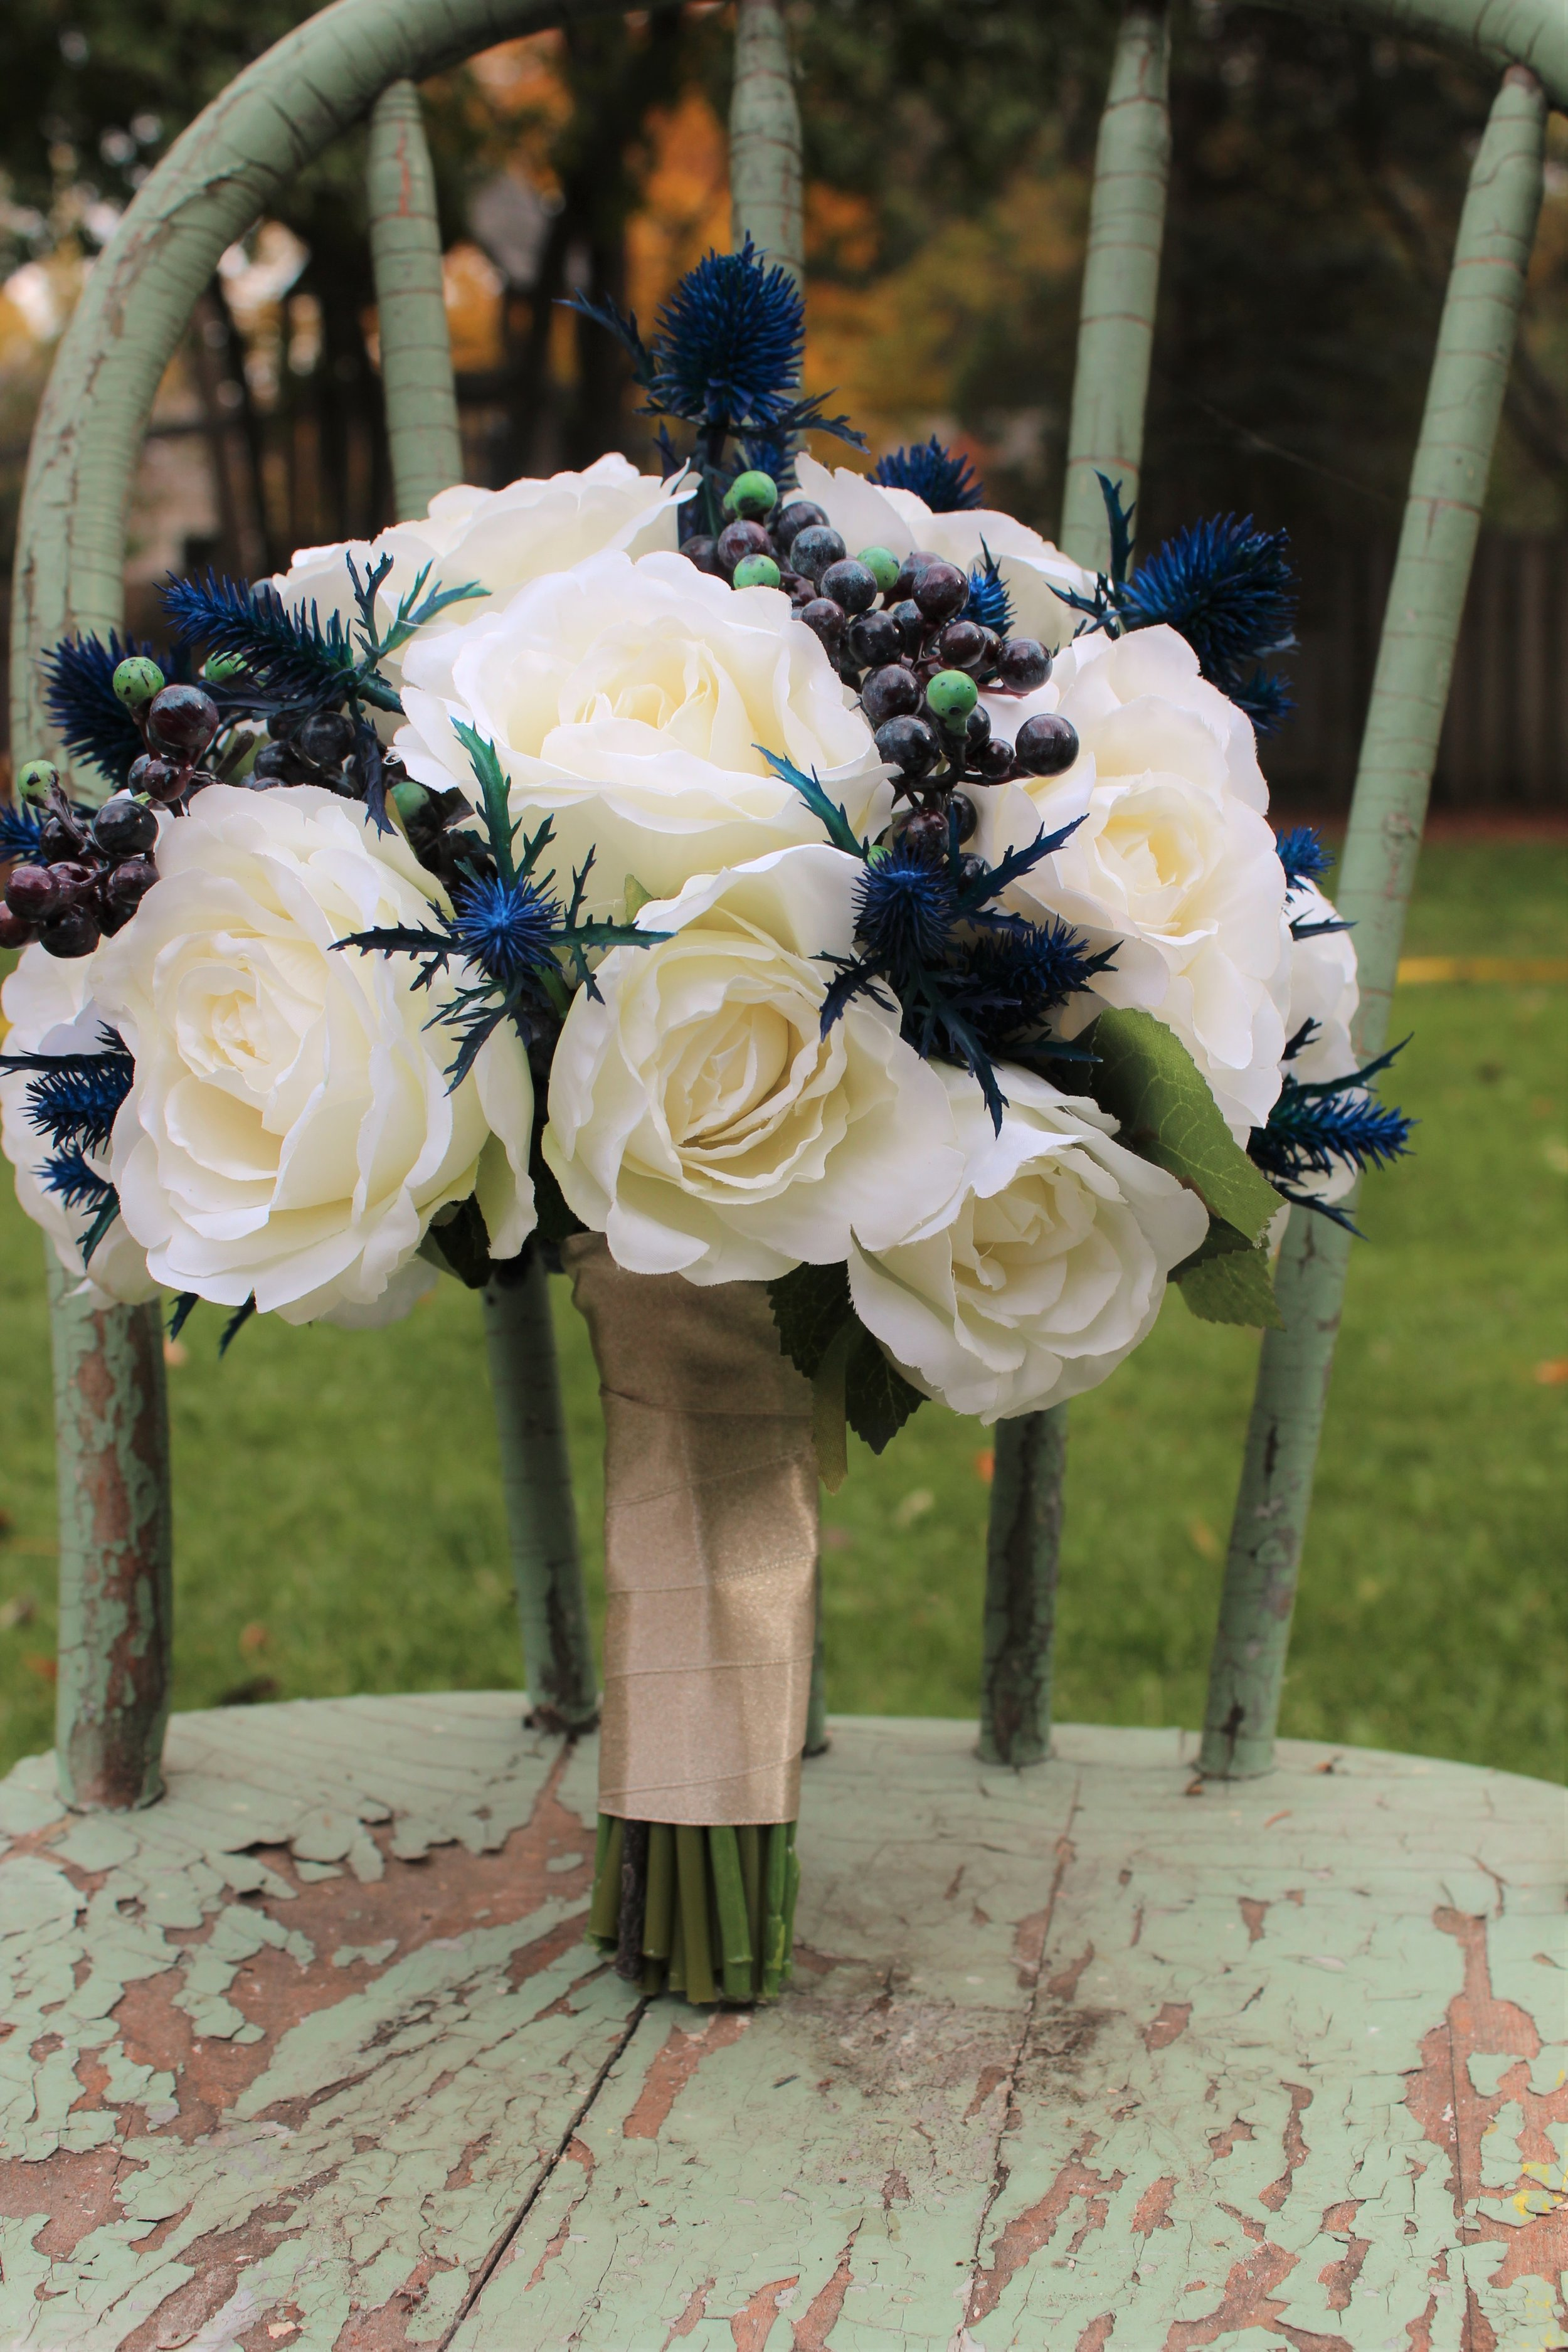 Ivory Roses, Blueberries and Blue Thistle